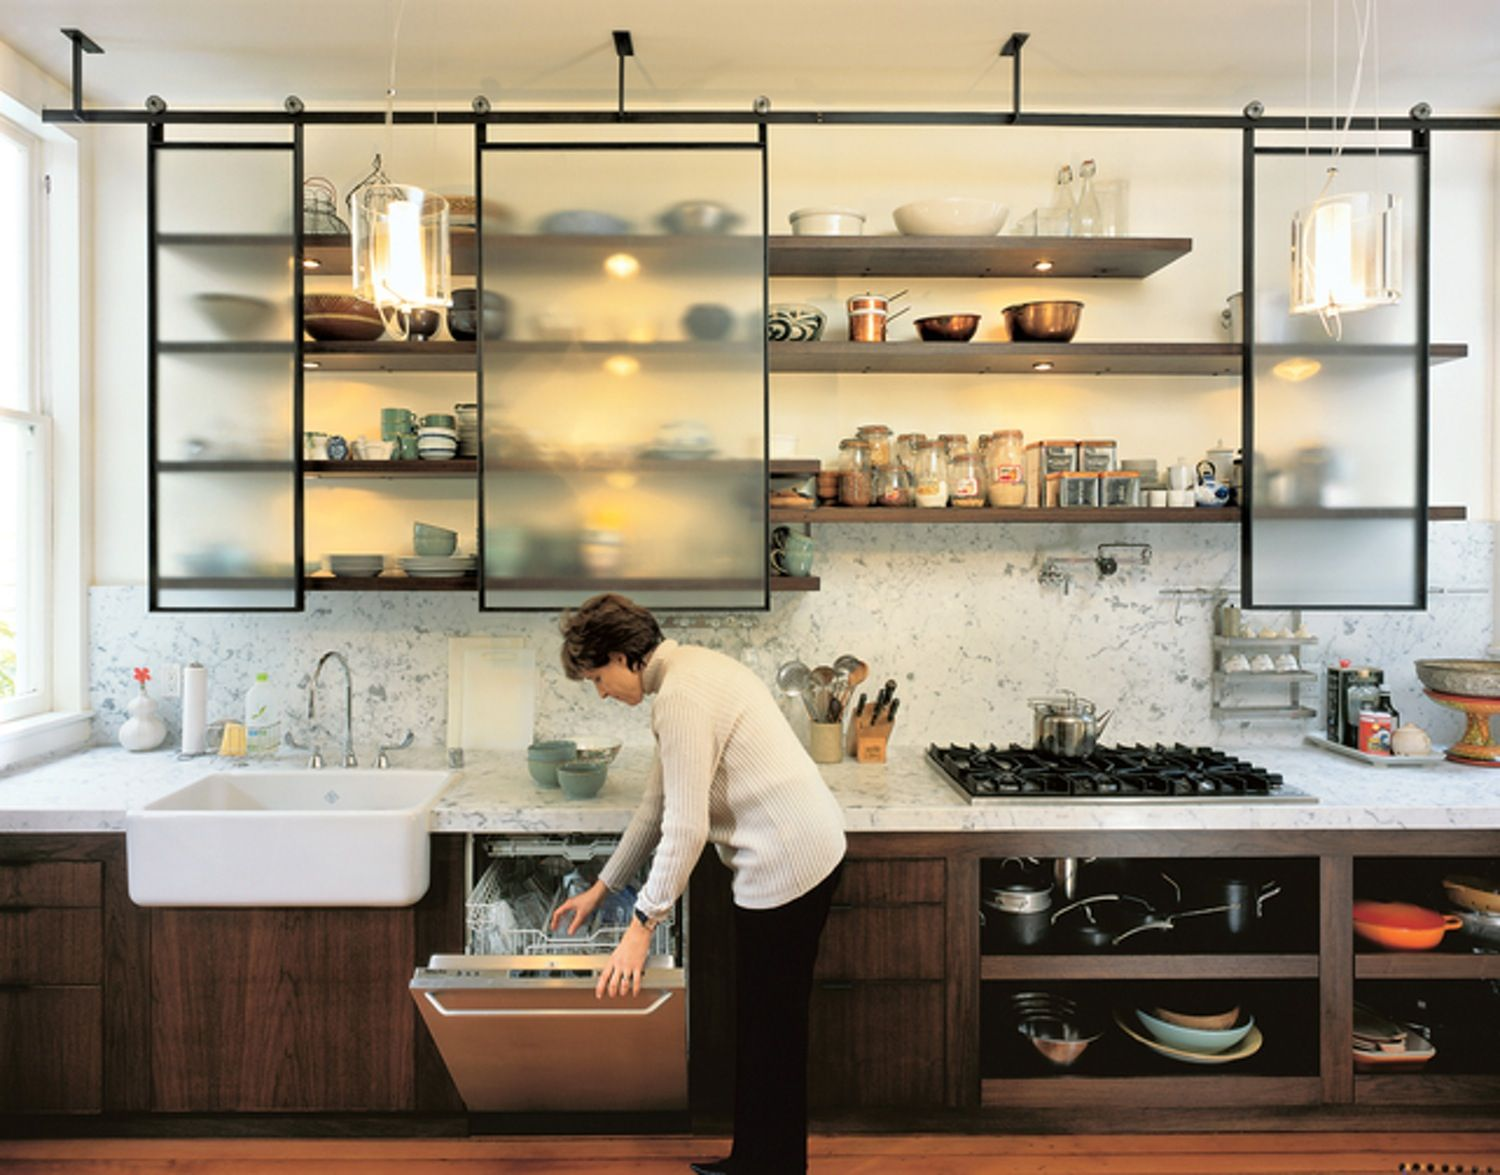 Kitchen Inspiration A Modern And Industrial Renovation Industrial Kitchen Design Kitchen Inspiration Design Open Kitchen Shelves